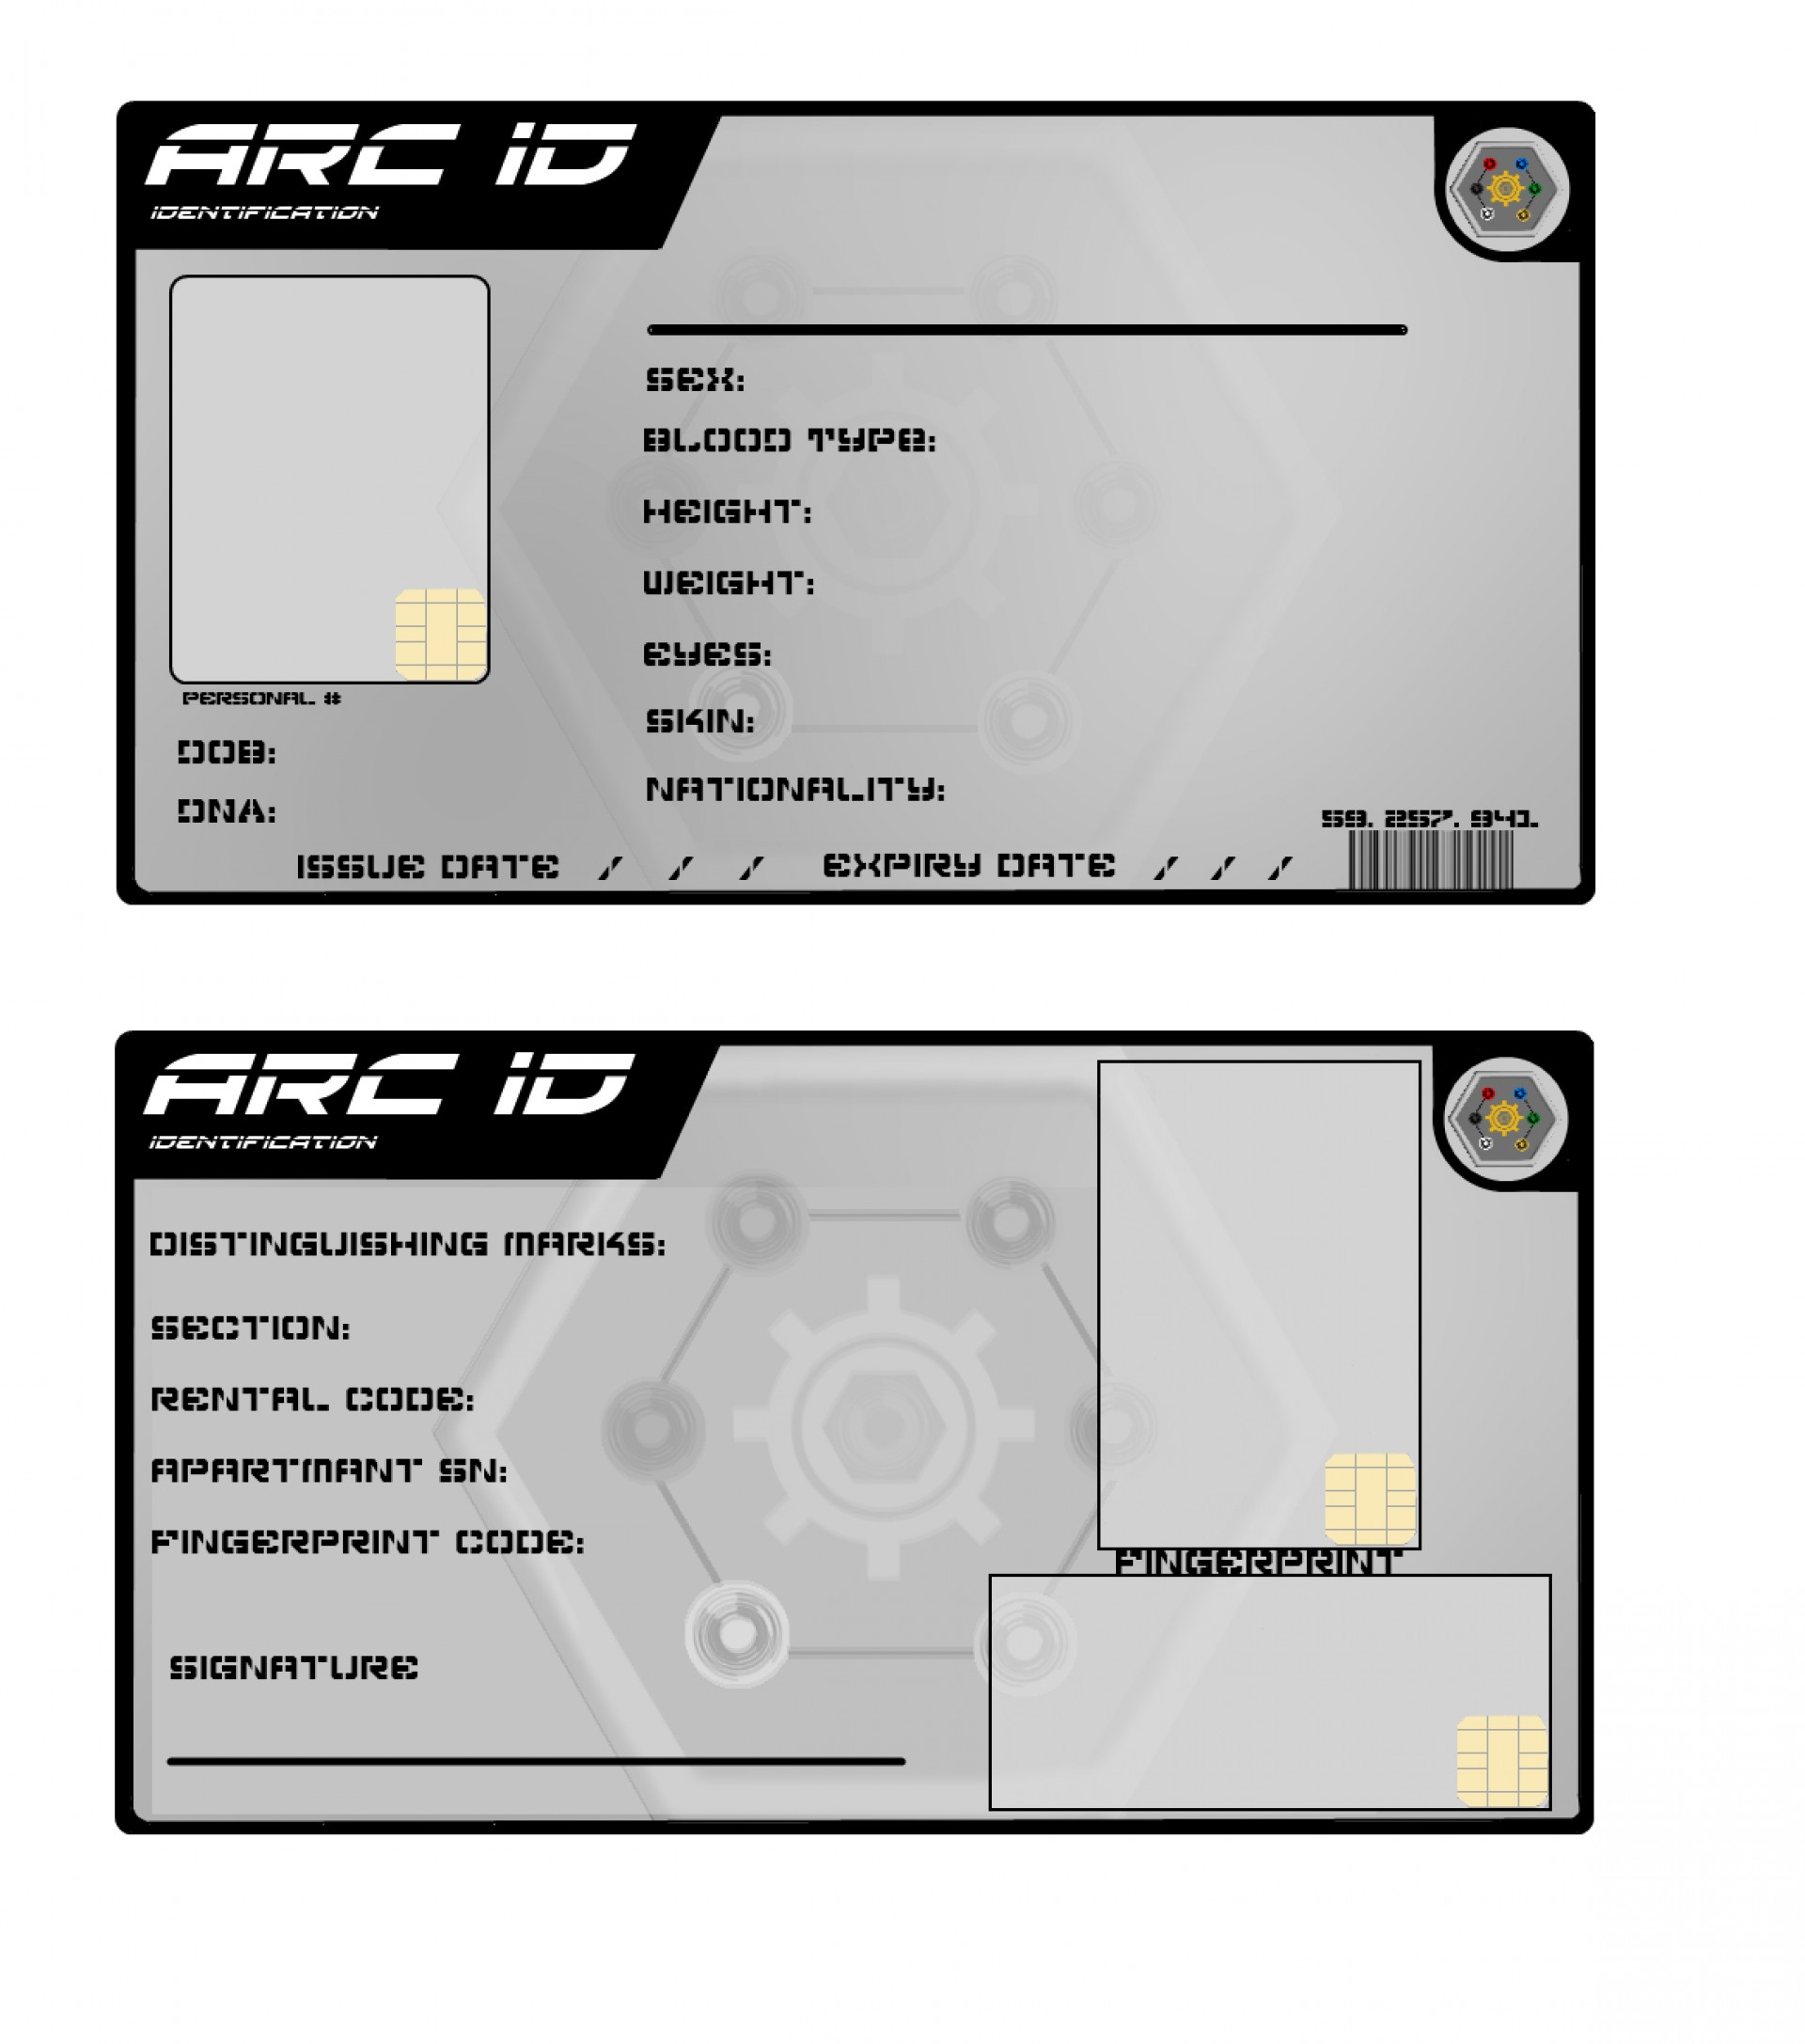 008 Free Printable Id Cards Templates Template Membership Card - Free Printable Id Cards Templates